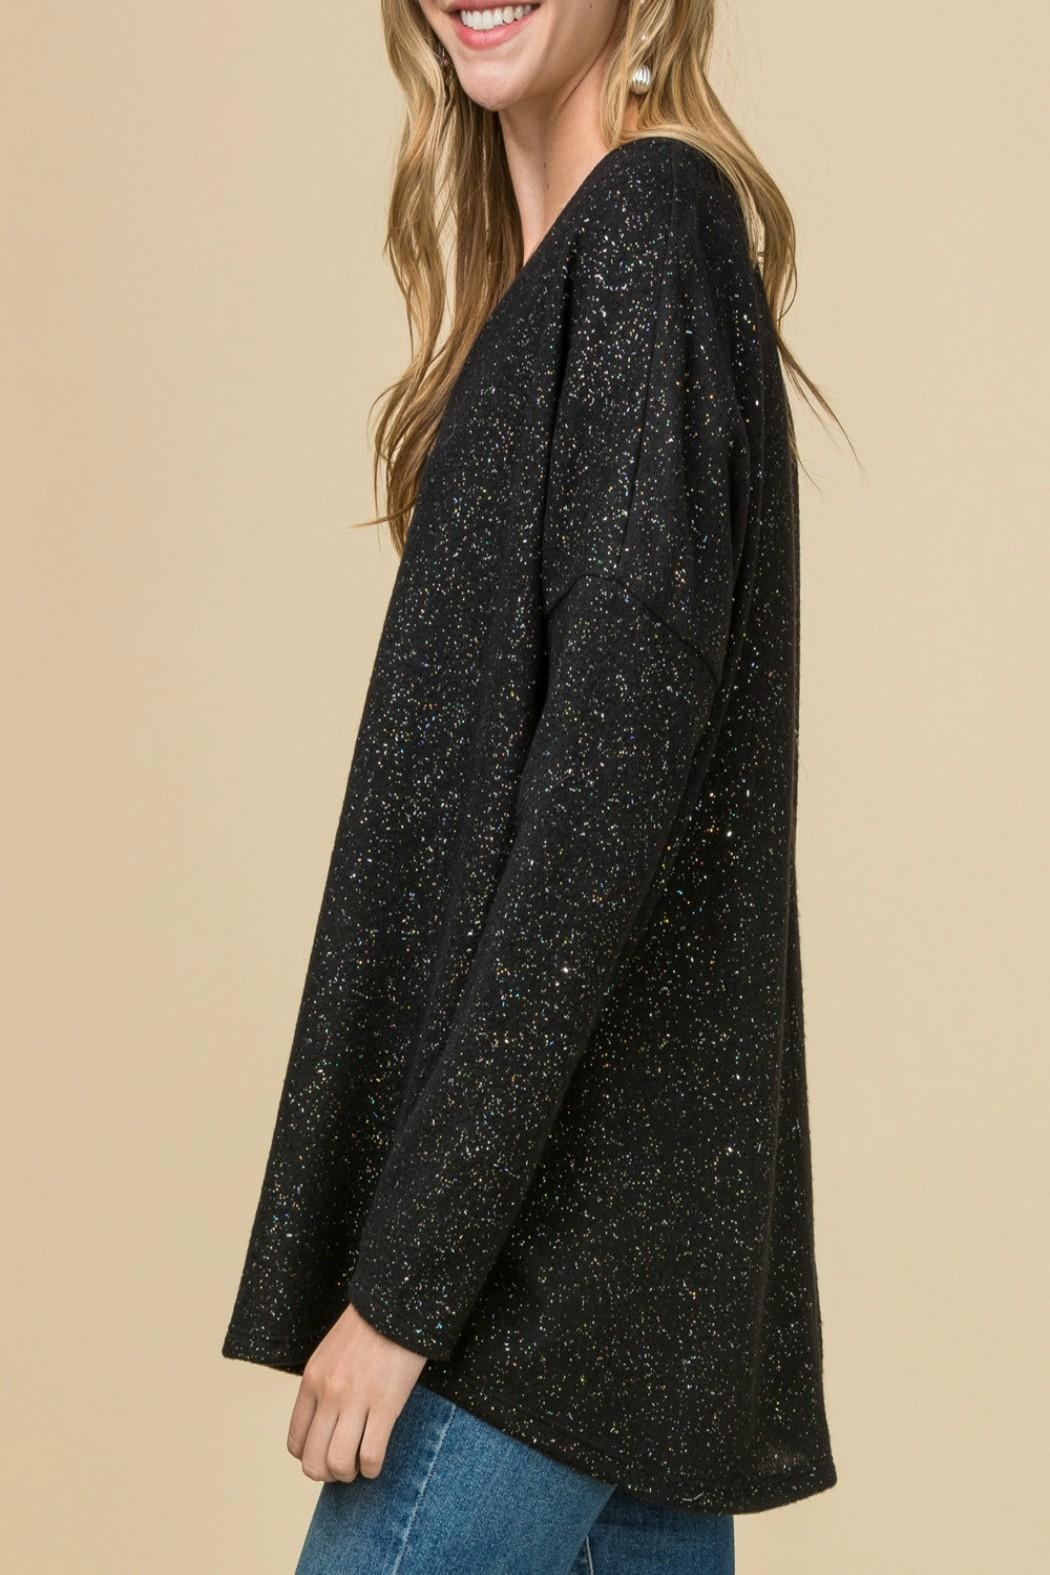 Entro Metallic Speckled Top - Side Cropped Image